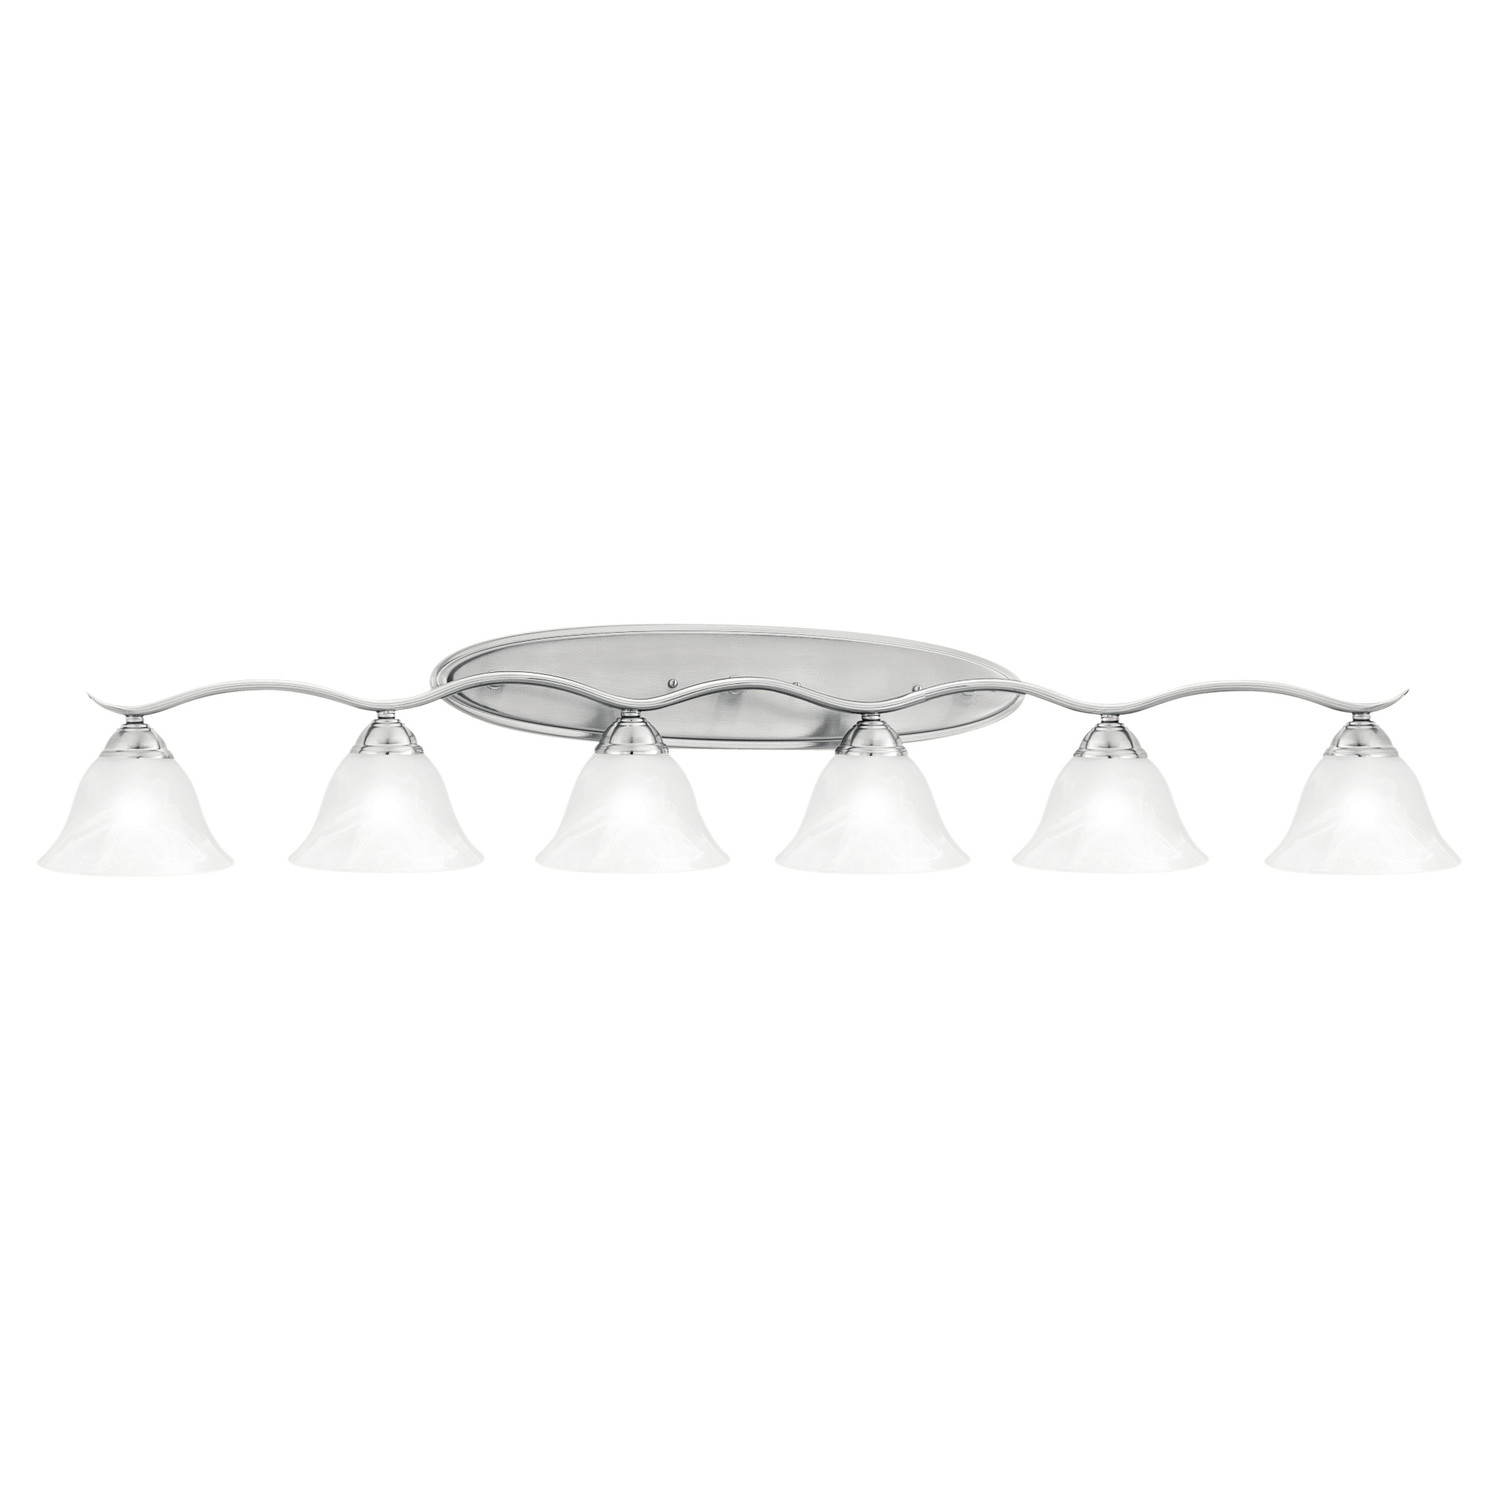 6 Light Vanity Fixture Homesfeed